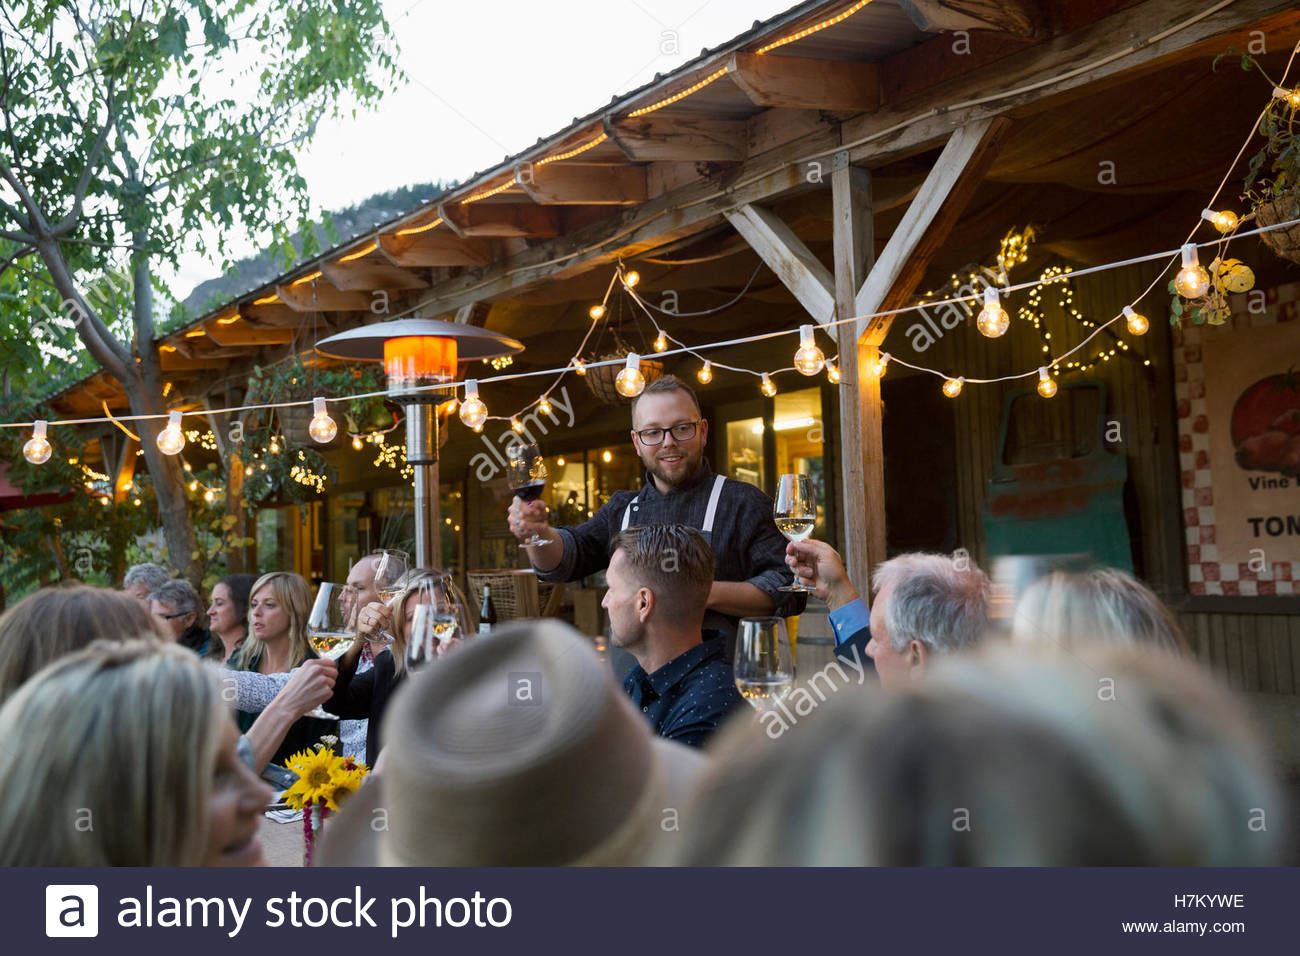 Man leading toast at outdoor dinner party under string lights Stock Photo